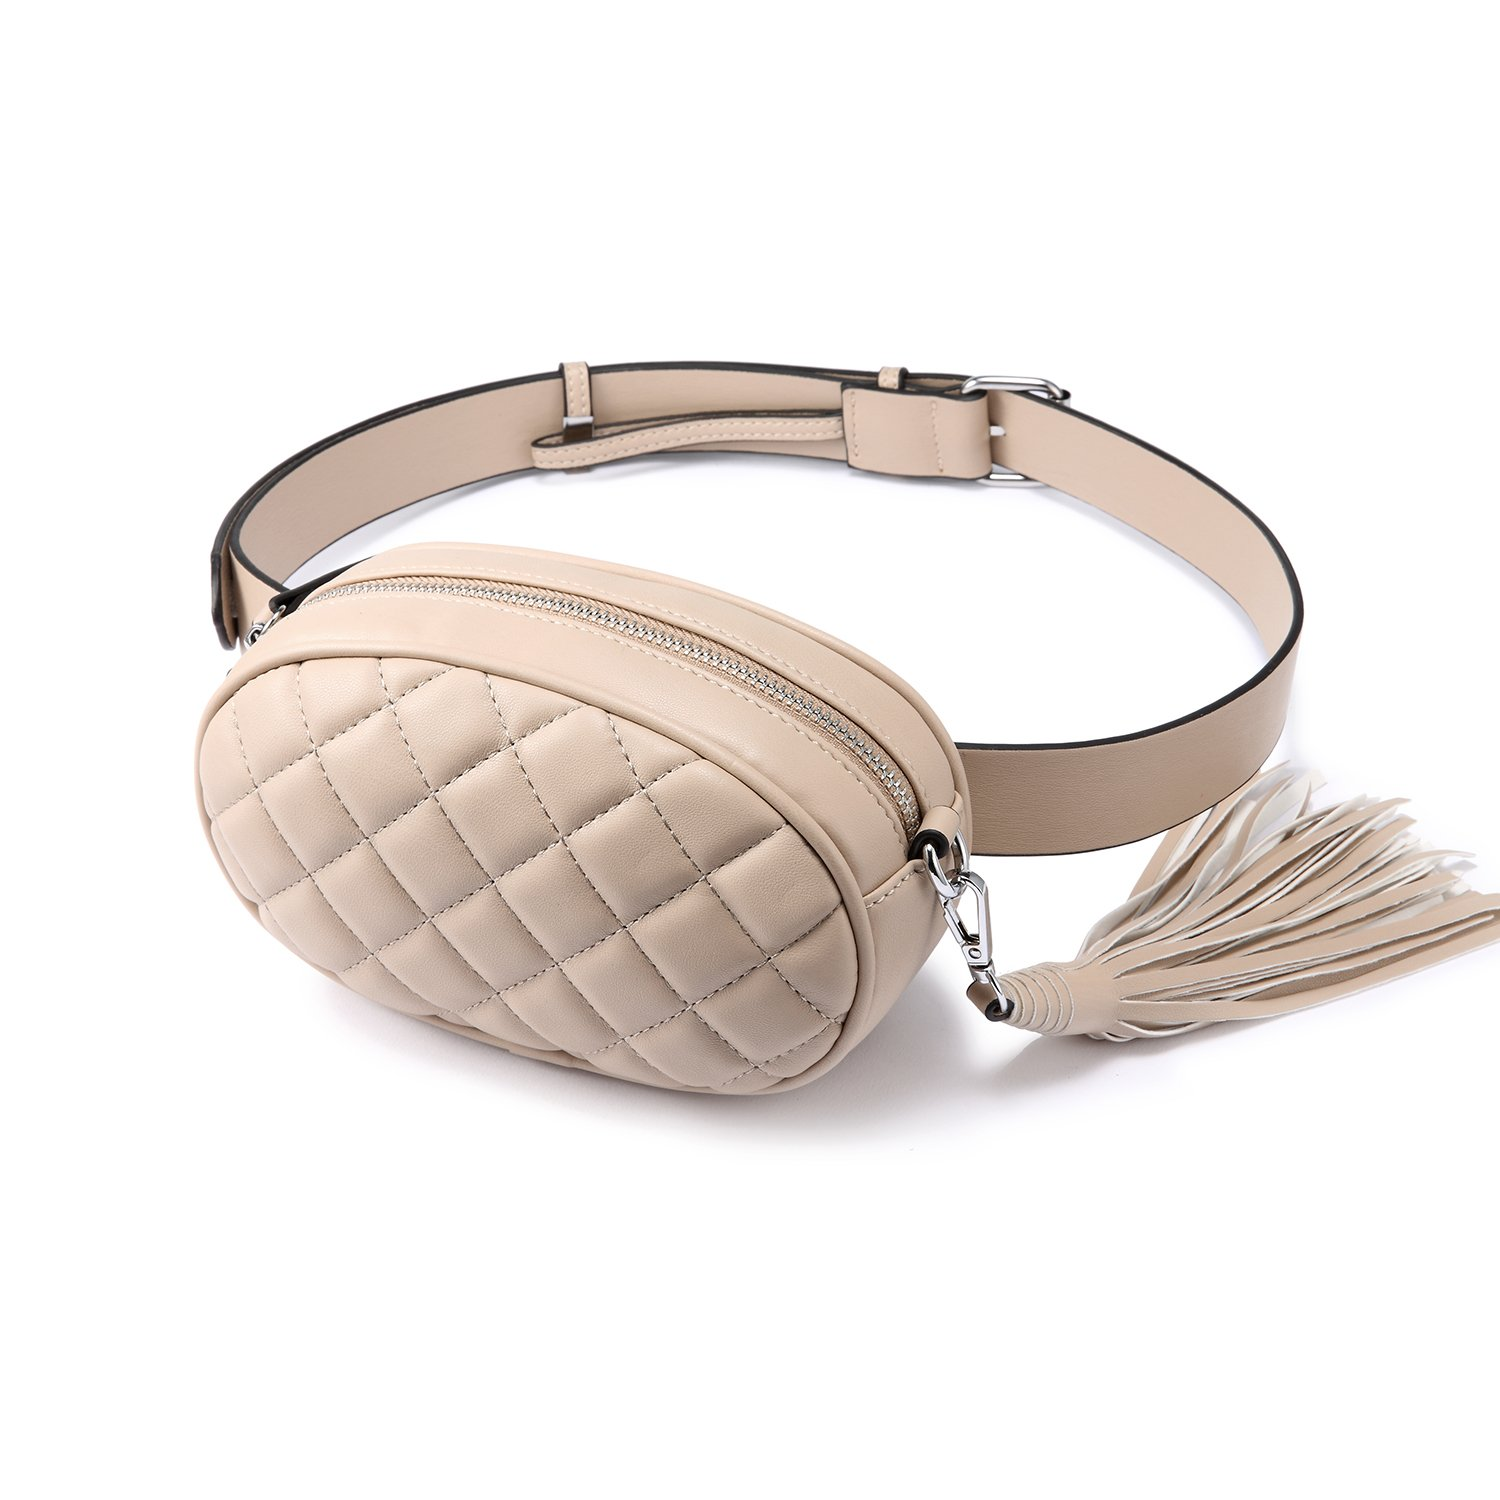 LOVEVOOK Fanny Pack Waist Bag Stylish Travel Cell Phone Bum Bag Beige